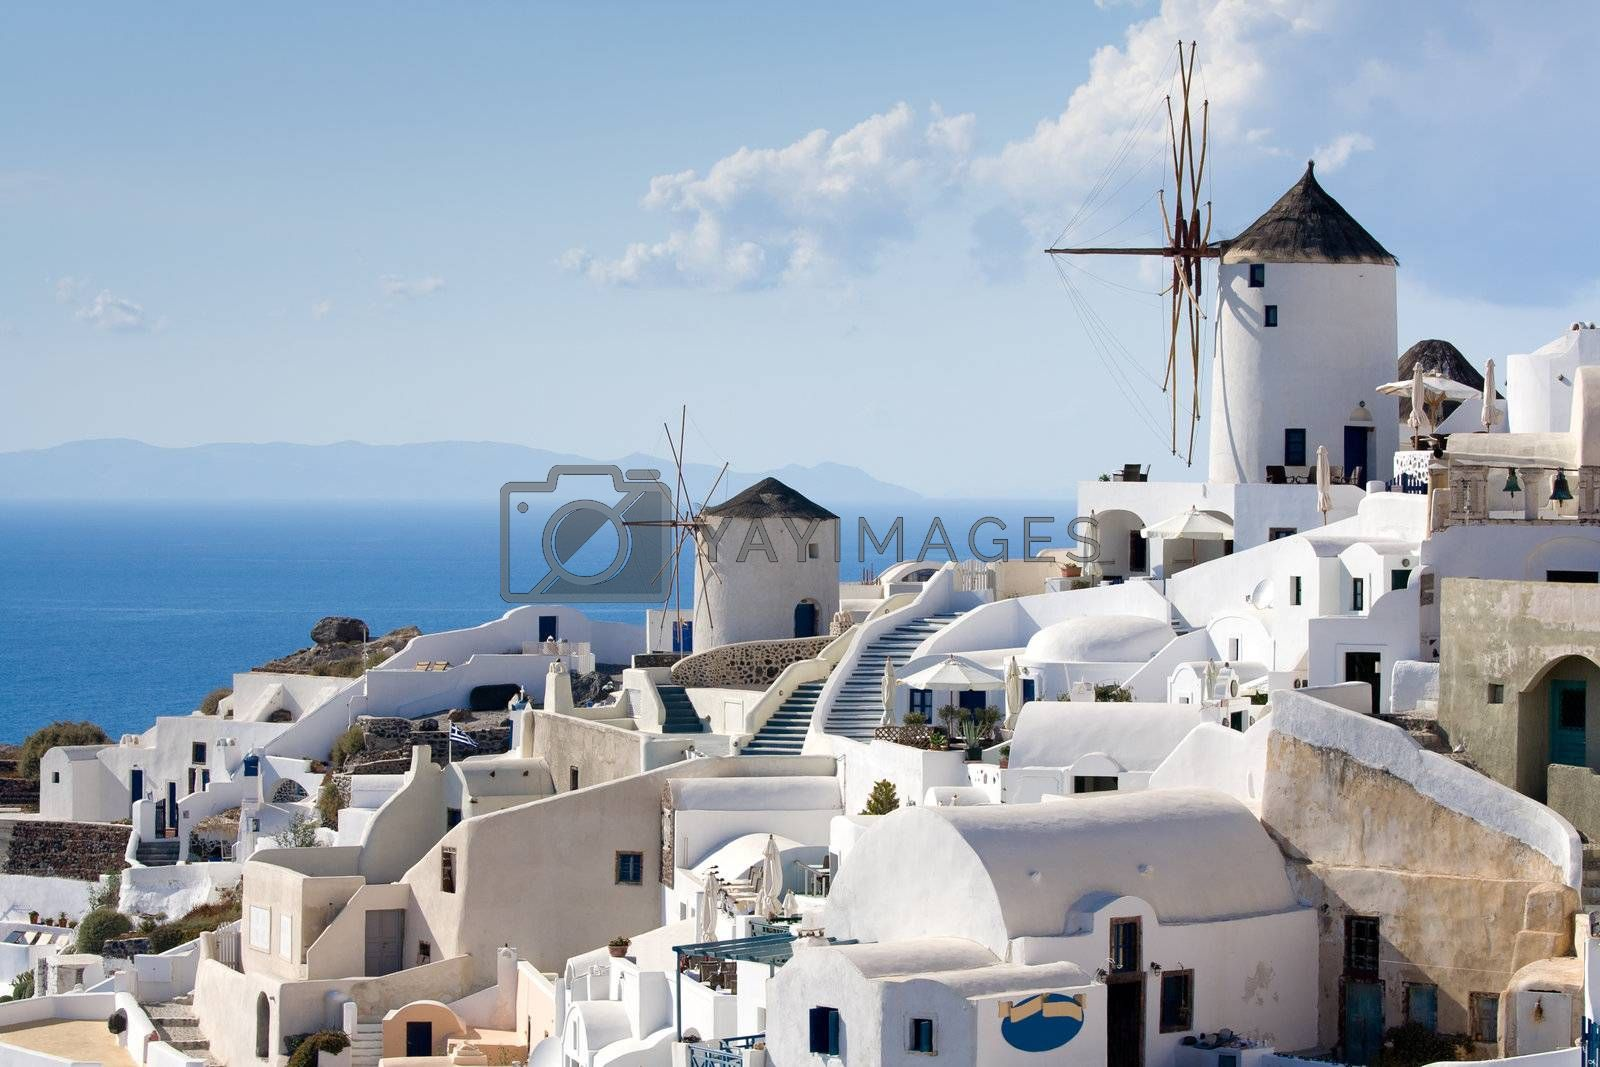 Old-style white traditional windmills in terraced village Oia of Cyclades island Santorini Greece on the blue Aegean Sea and sky background